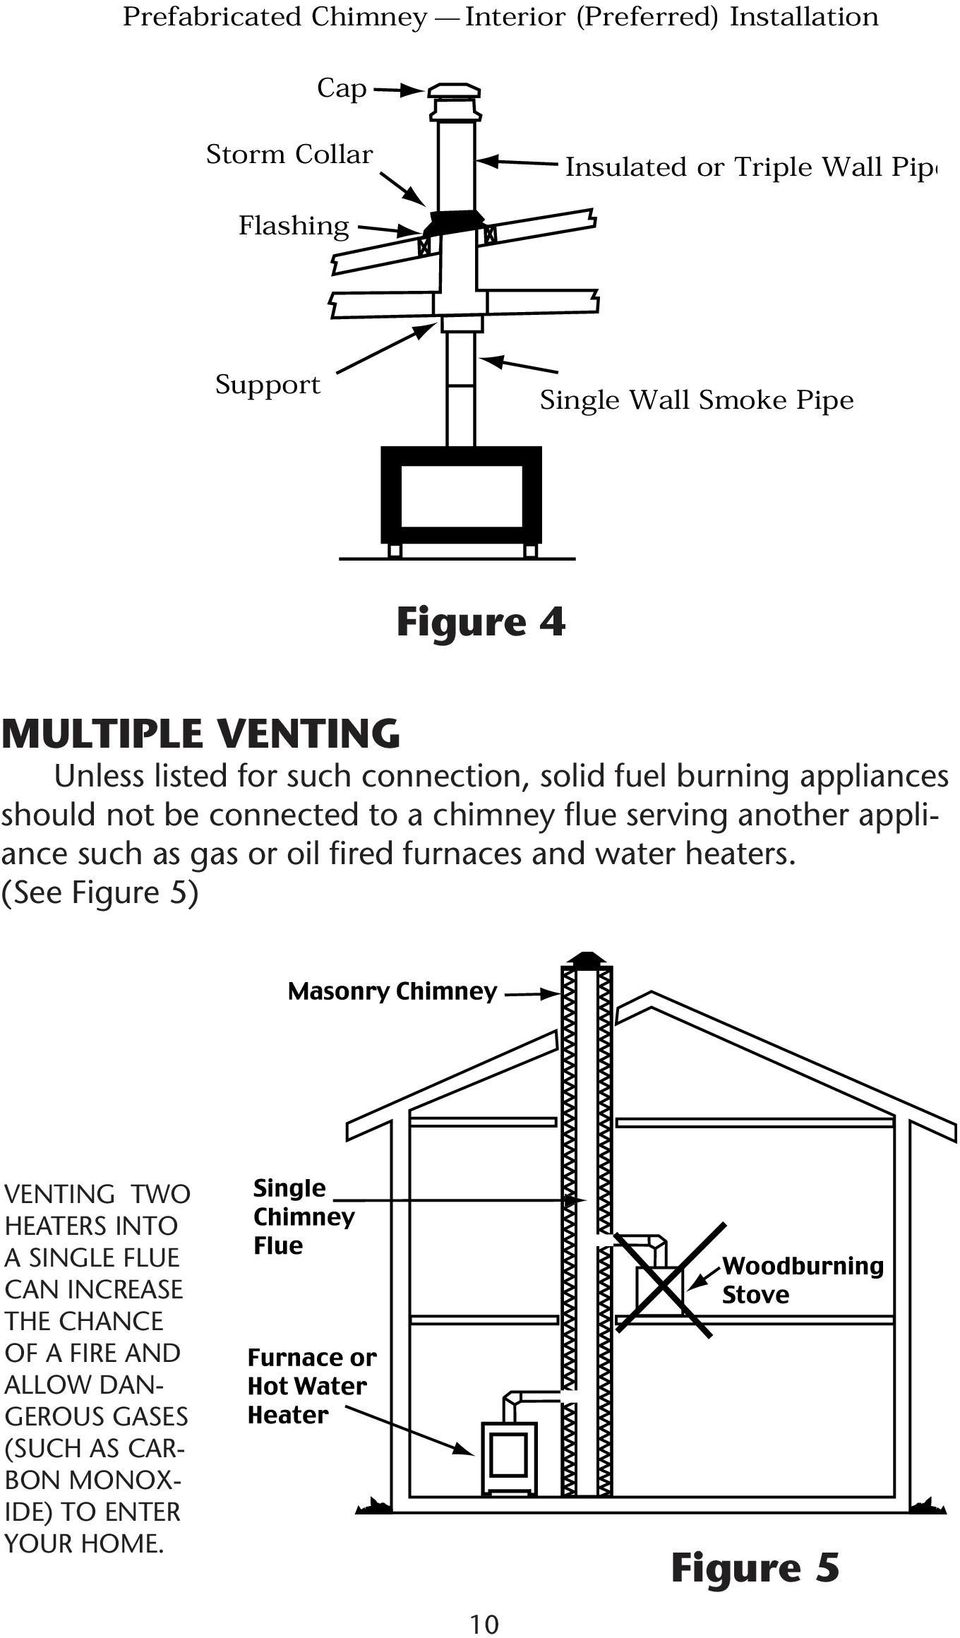 chimney flue serving another appliance such as gas or oil fired furnaces and water heaters.